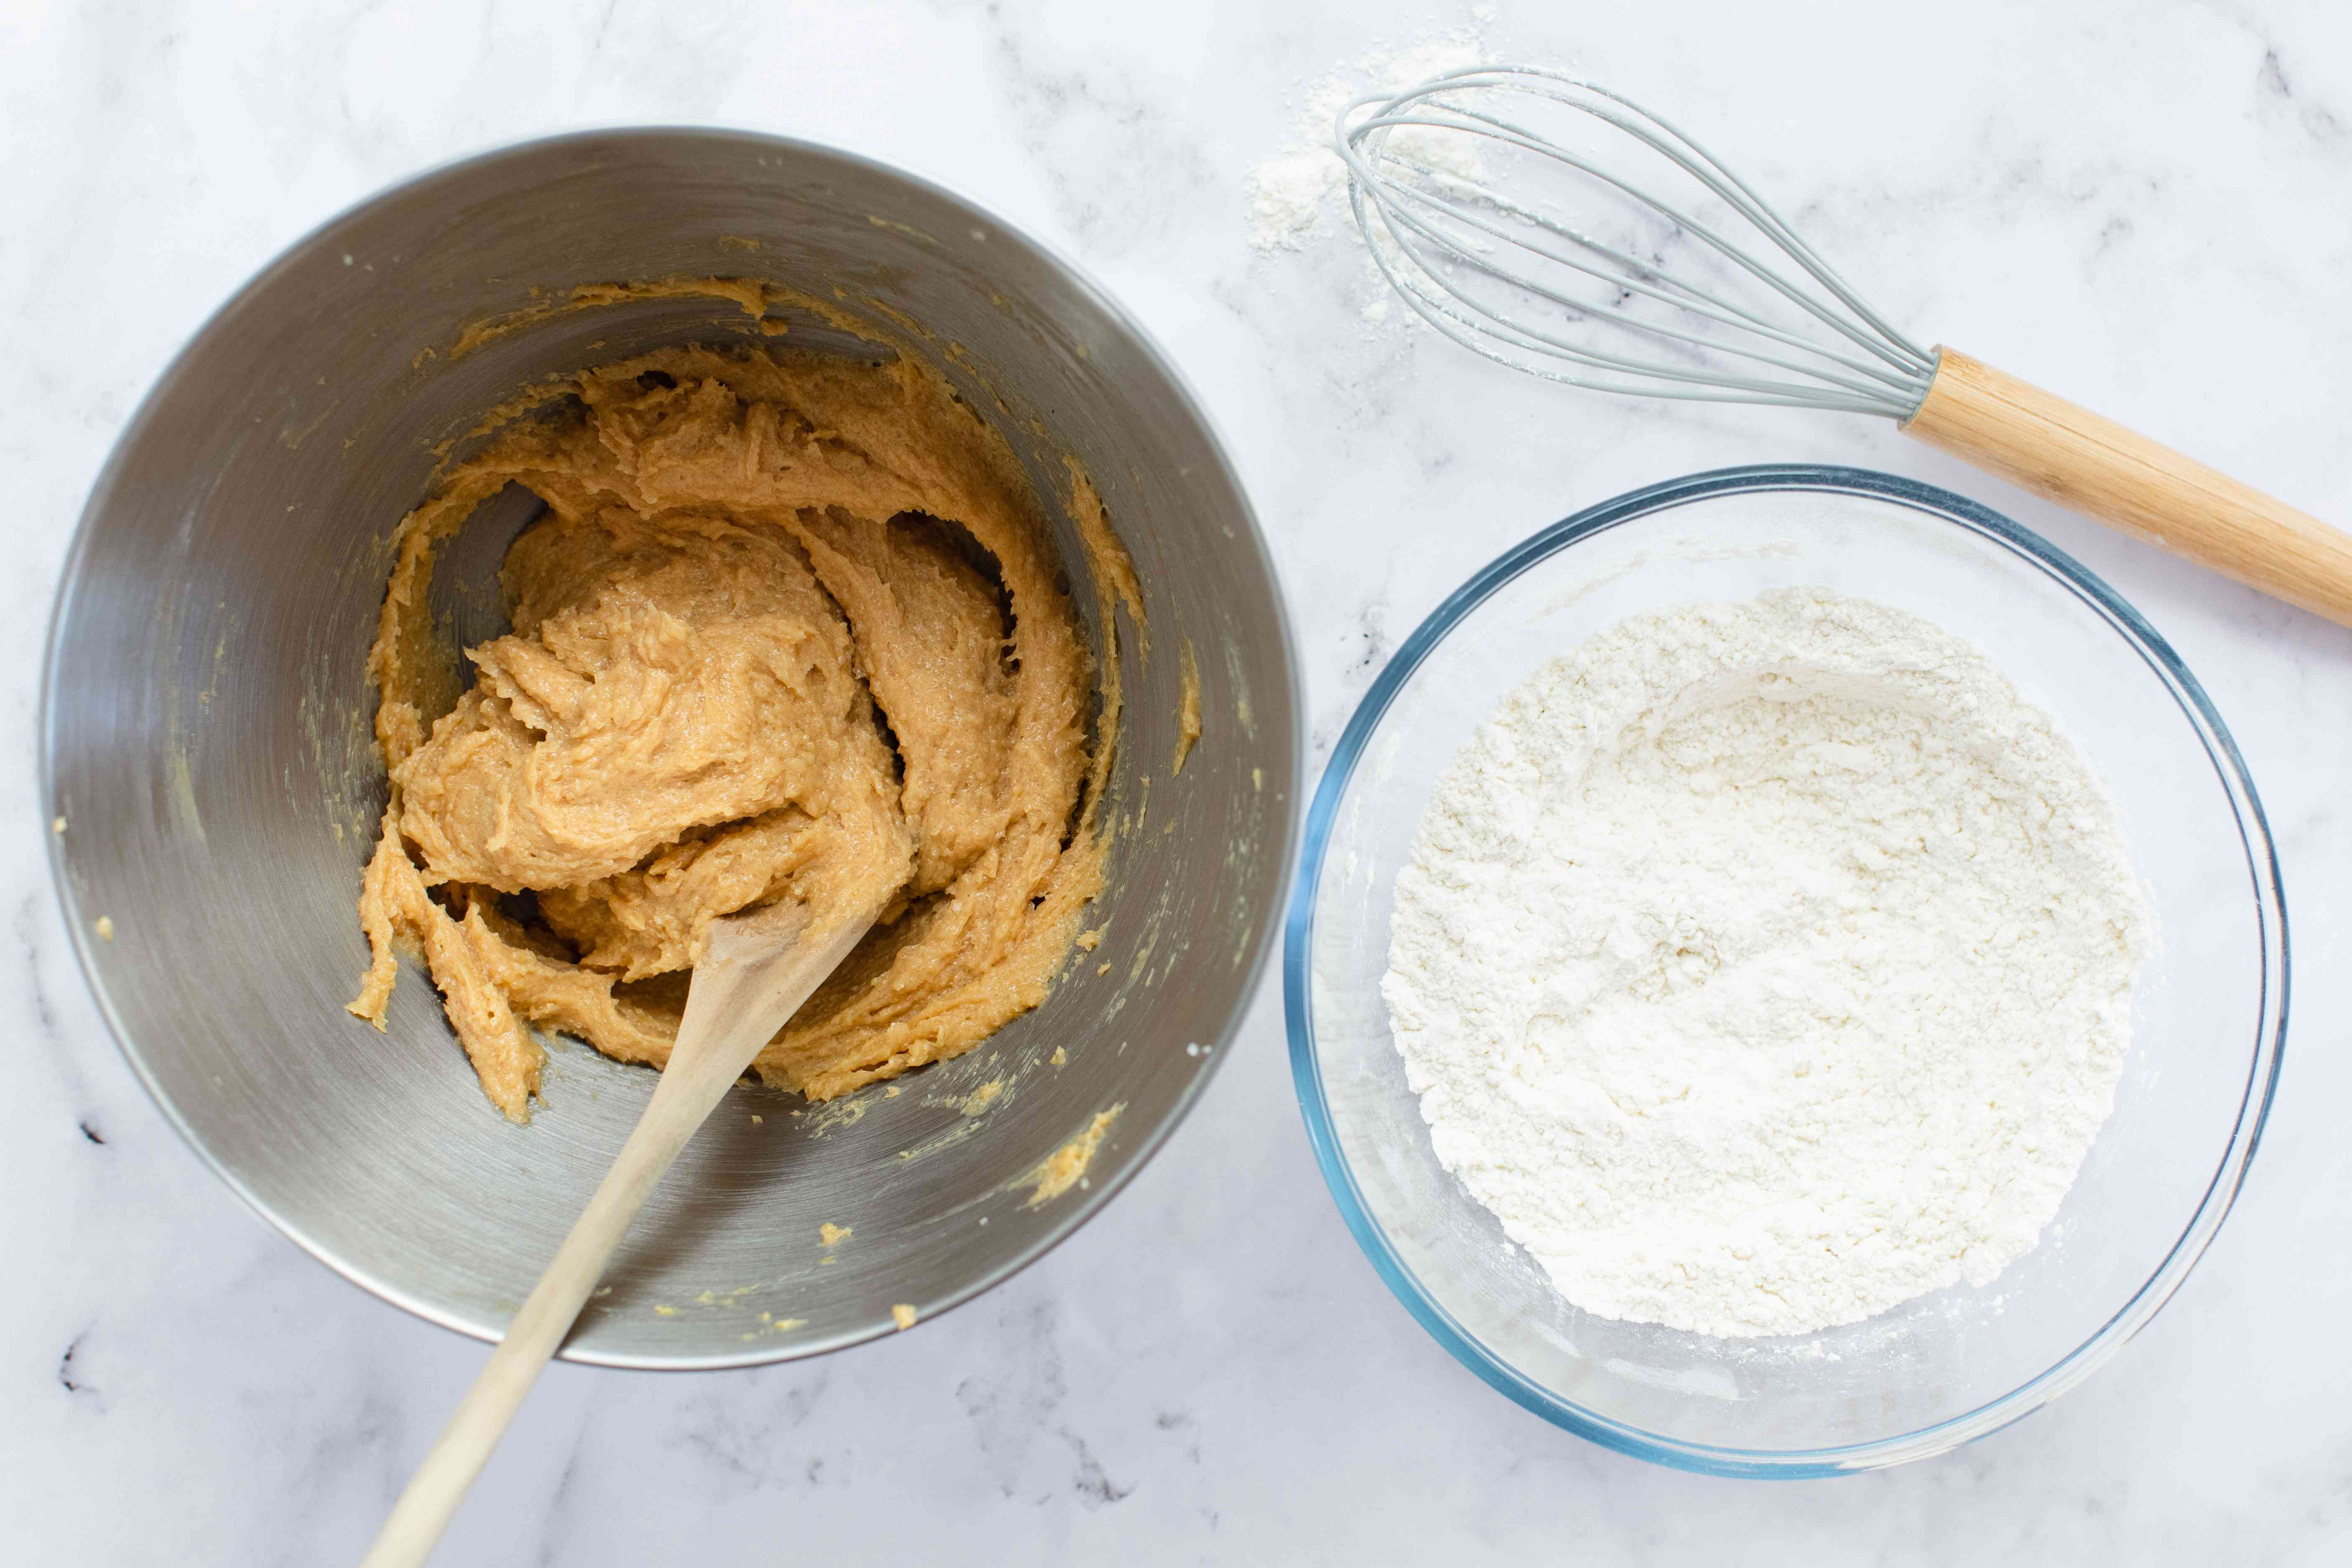 Peanut butter in a metal bowl with flour in a glass bowl next to it.